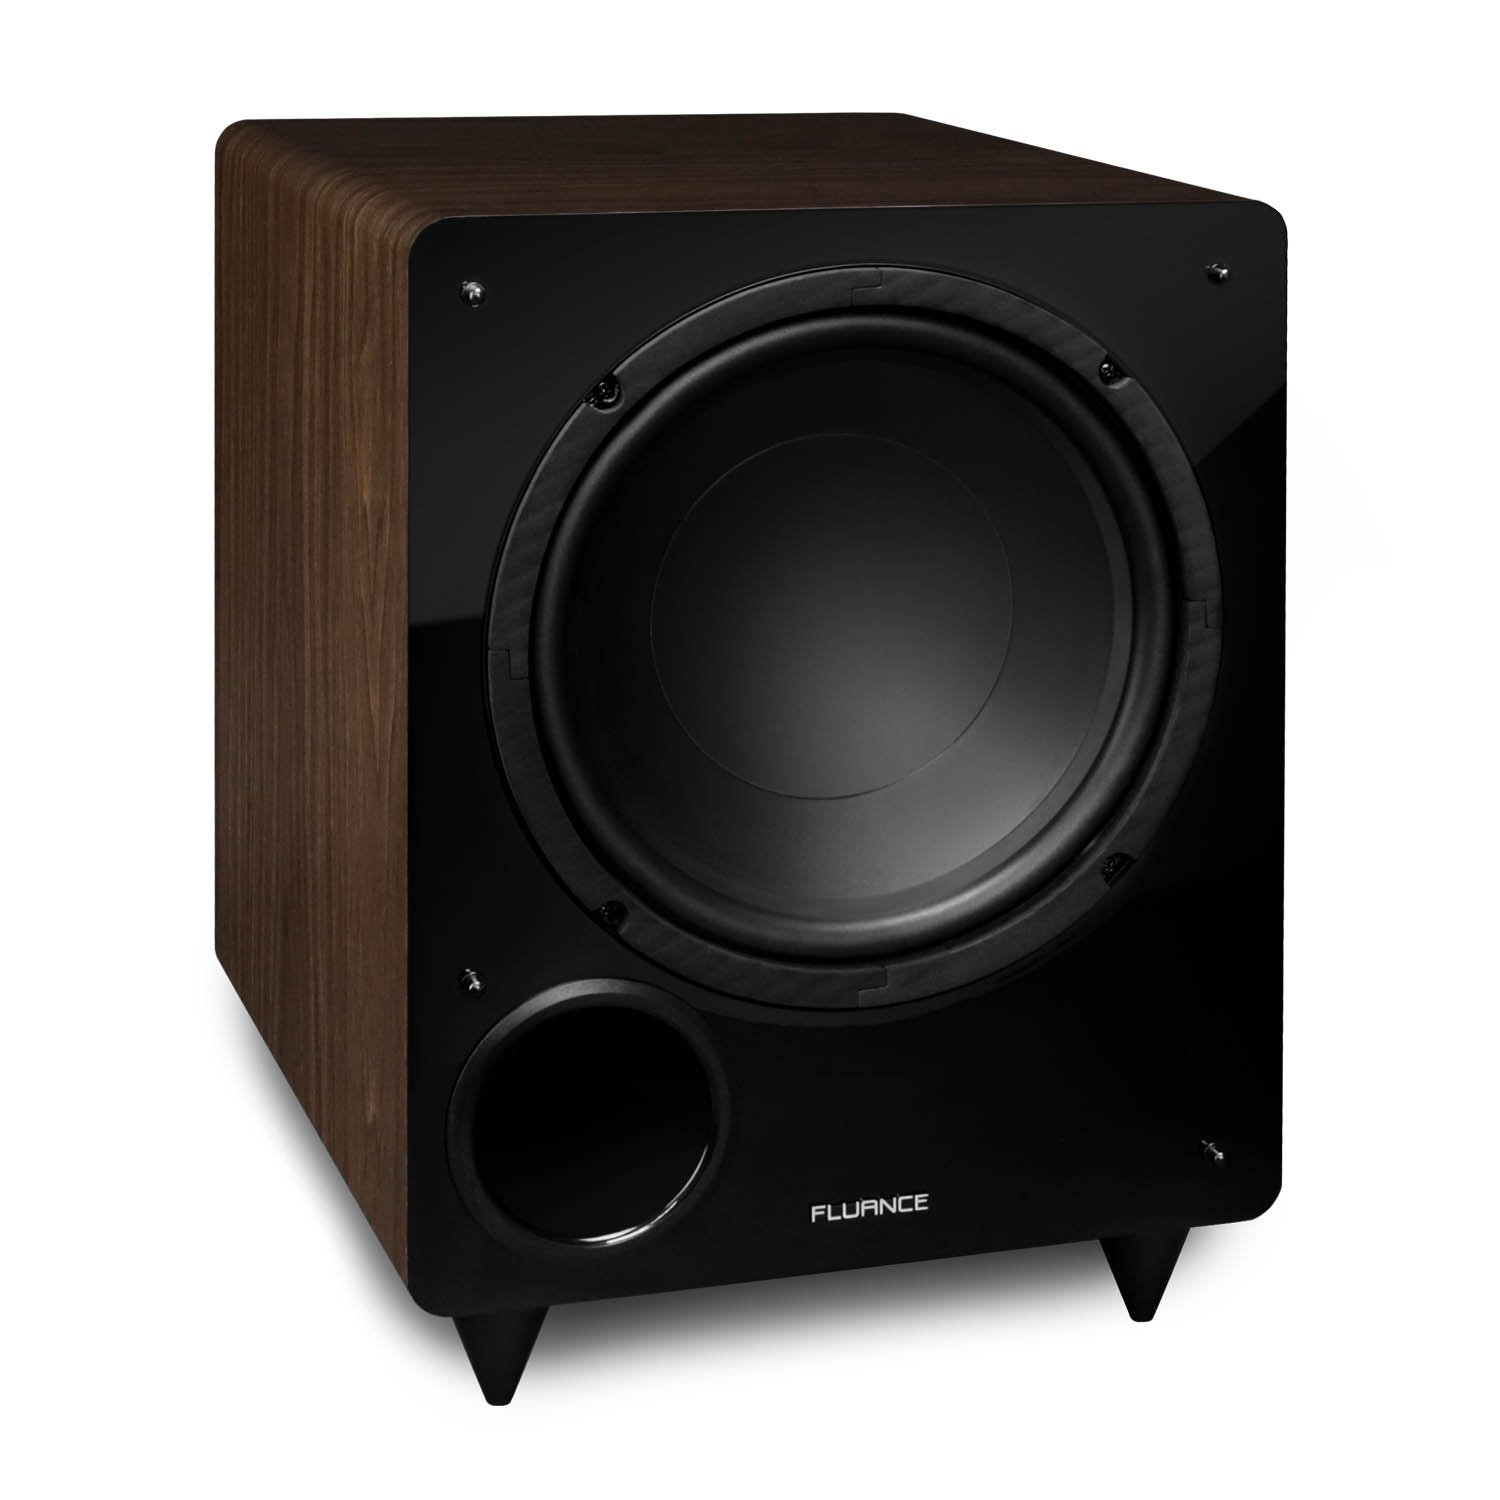 Fluance DB10W 10-inch Low Frequency Powered Subwoofer for Home Theater (Natural Walnut) by Fluance